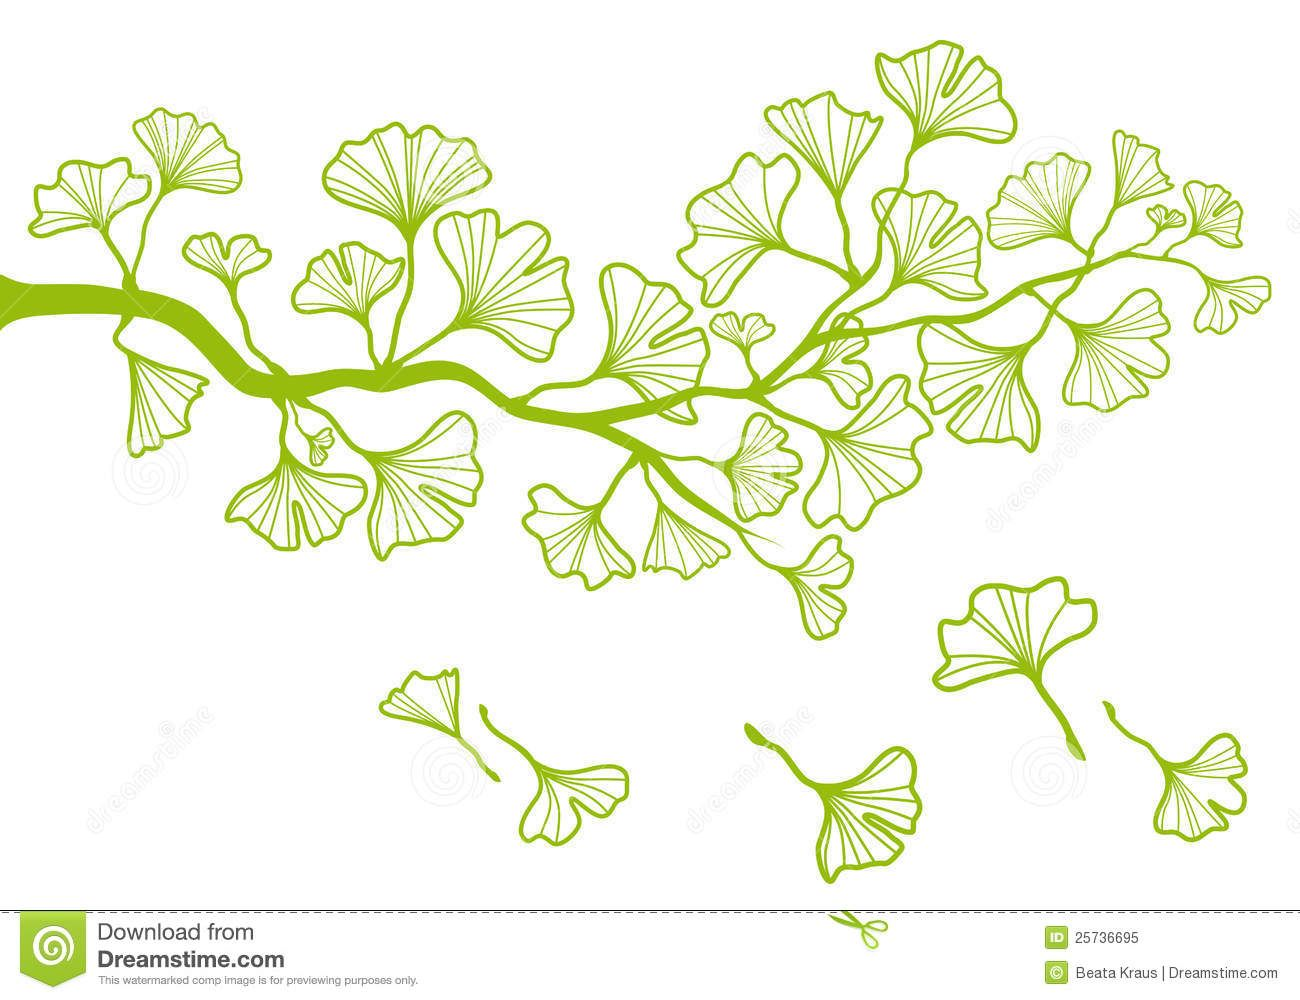 Ginkgo Branch With Leaves, Vector - Download From Over 30 Million ...